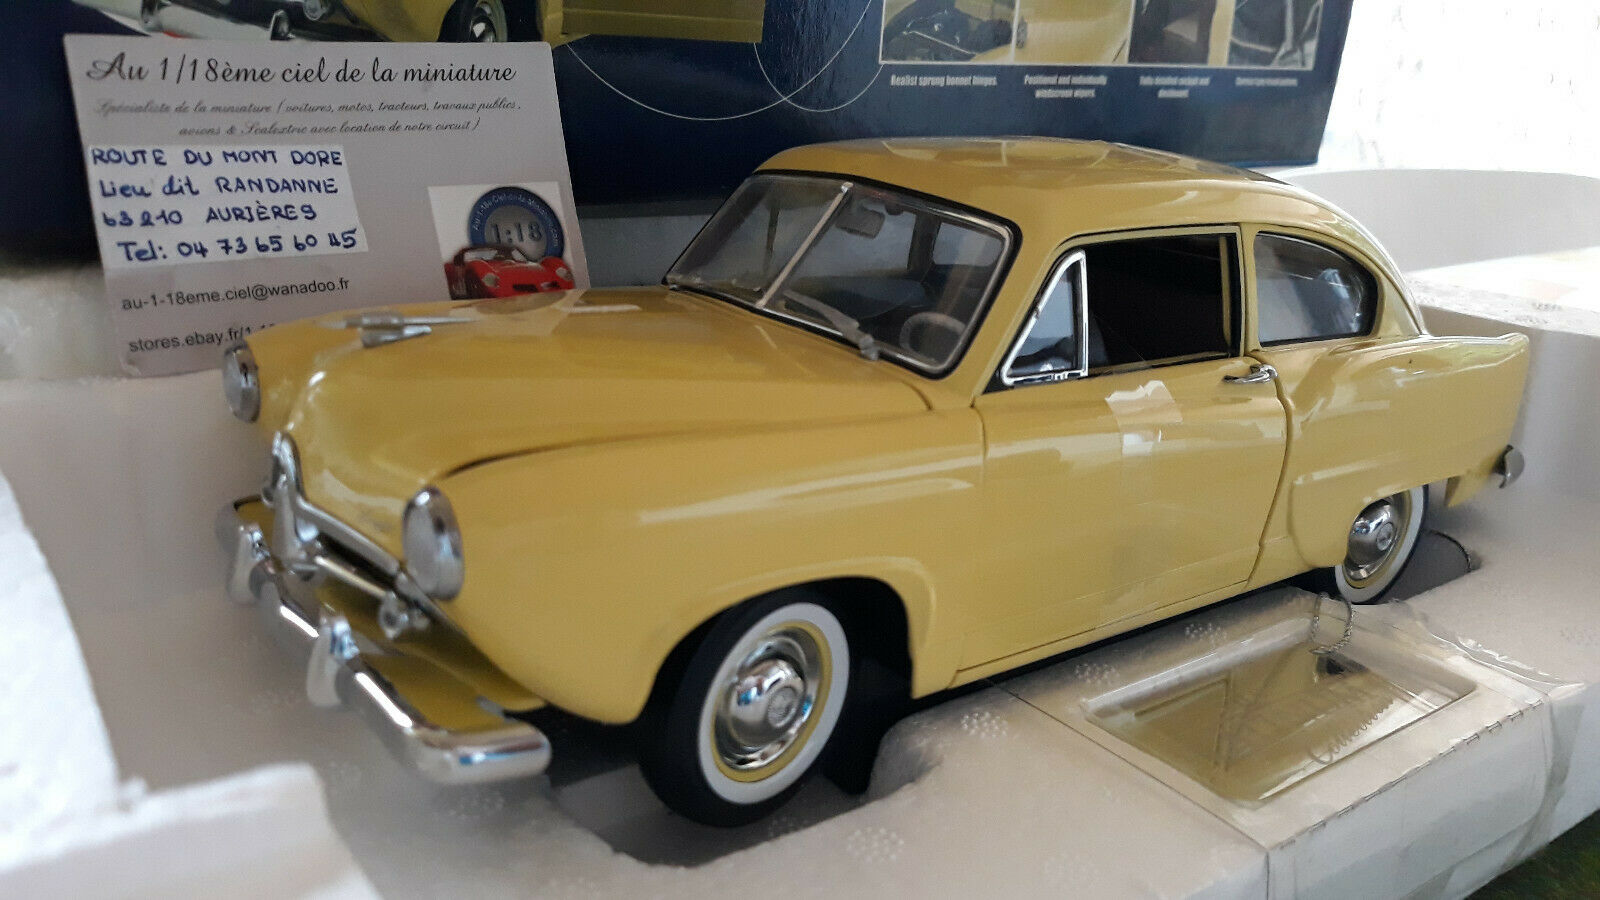 comprar descuentos KAISER HENRY J. 1951 amarillo au 1 18 SUN SUN SUN Estrella 5091 voiture miniature de collection  El ultimo 2018